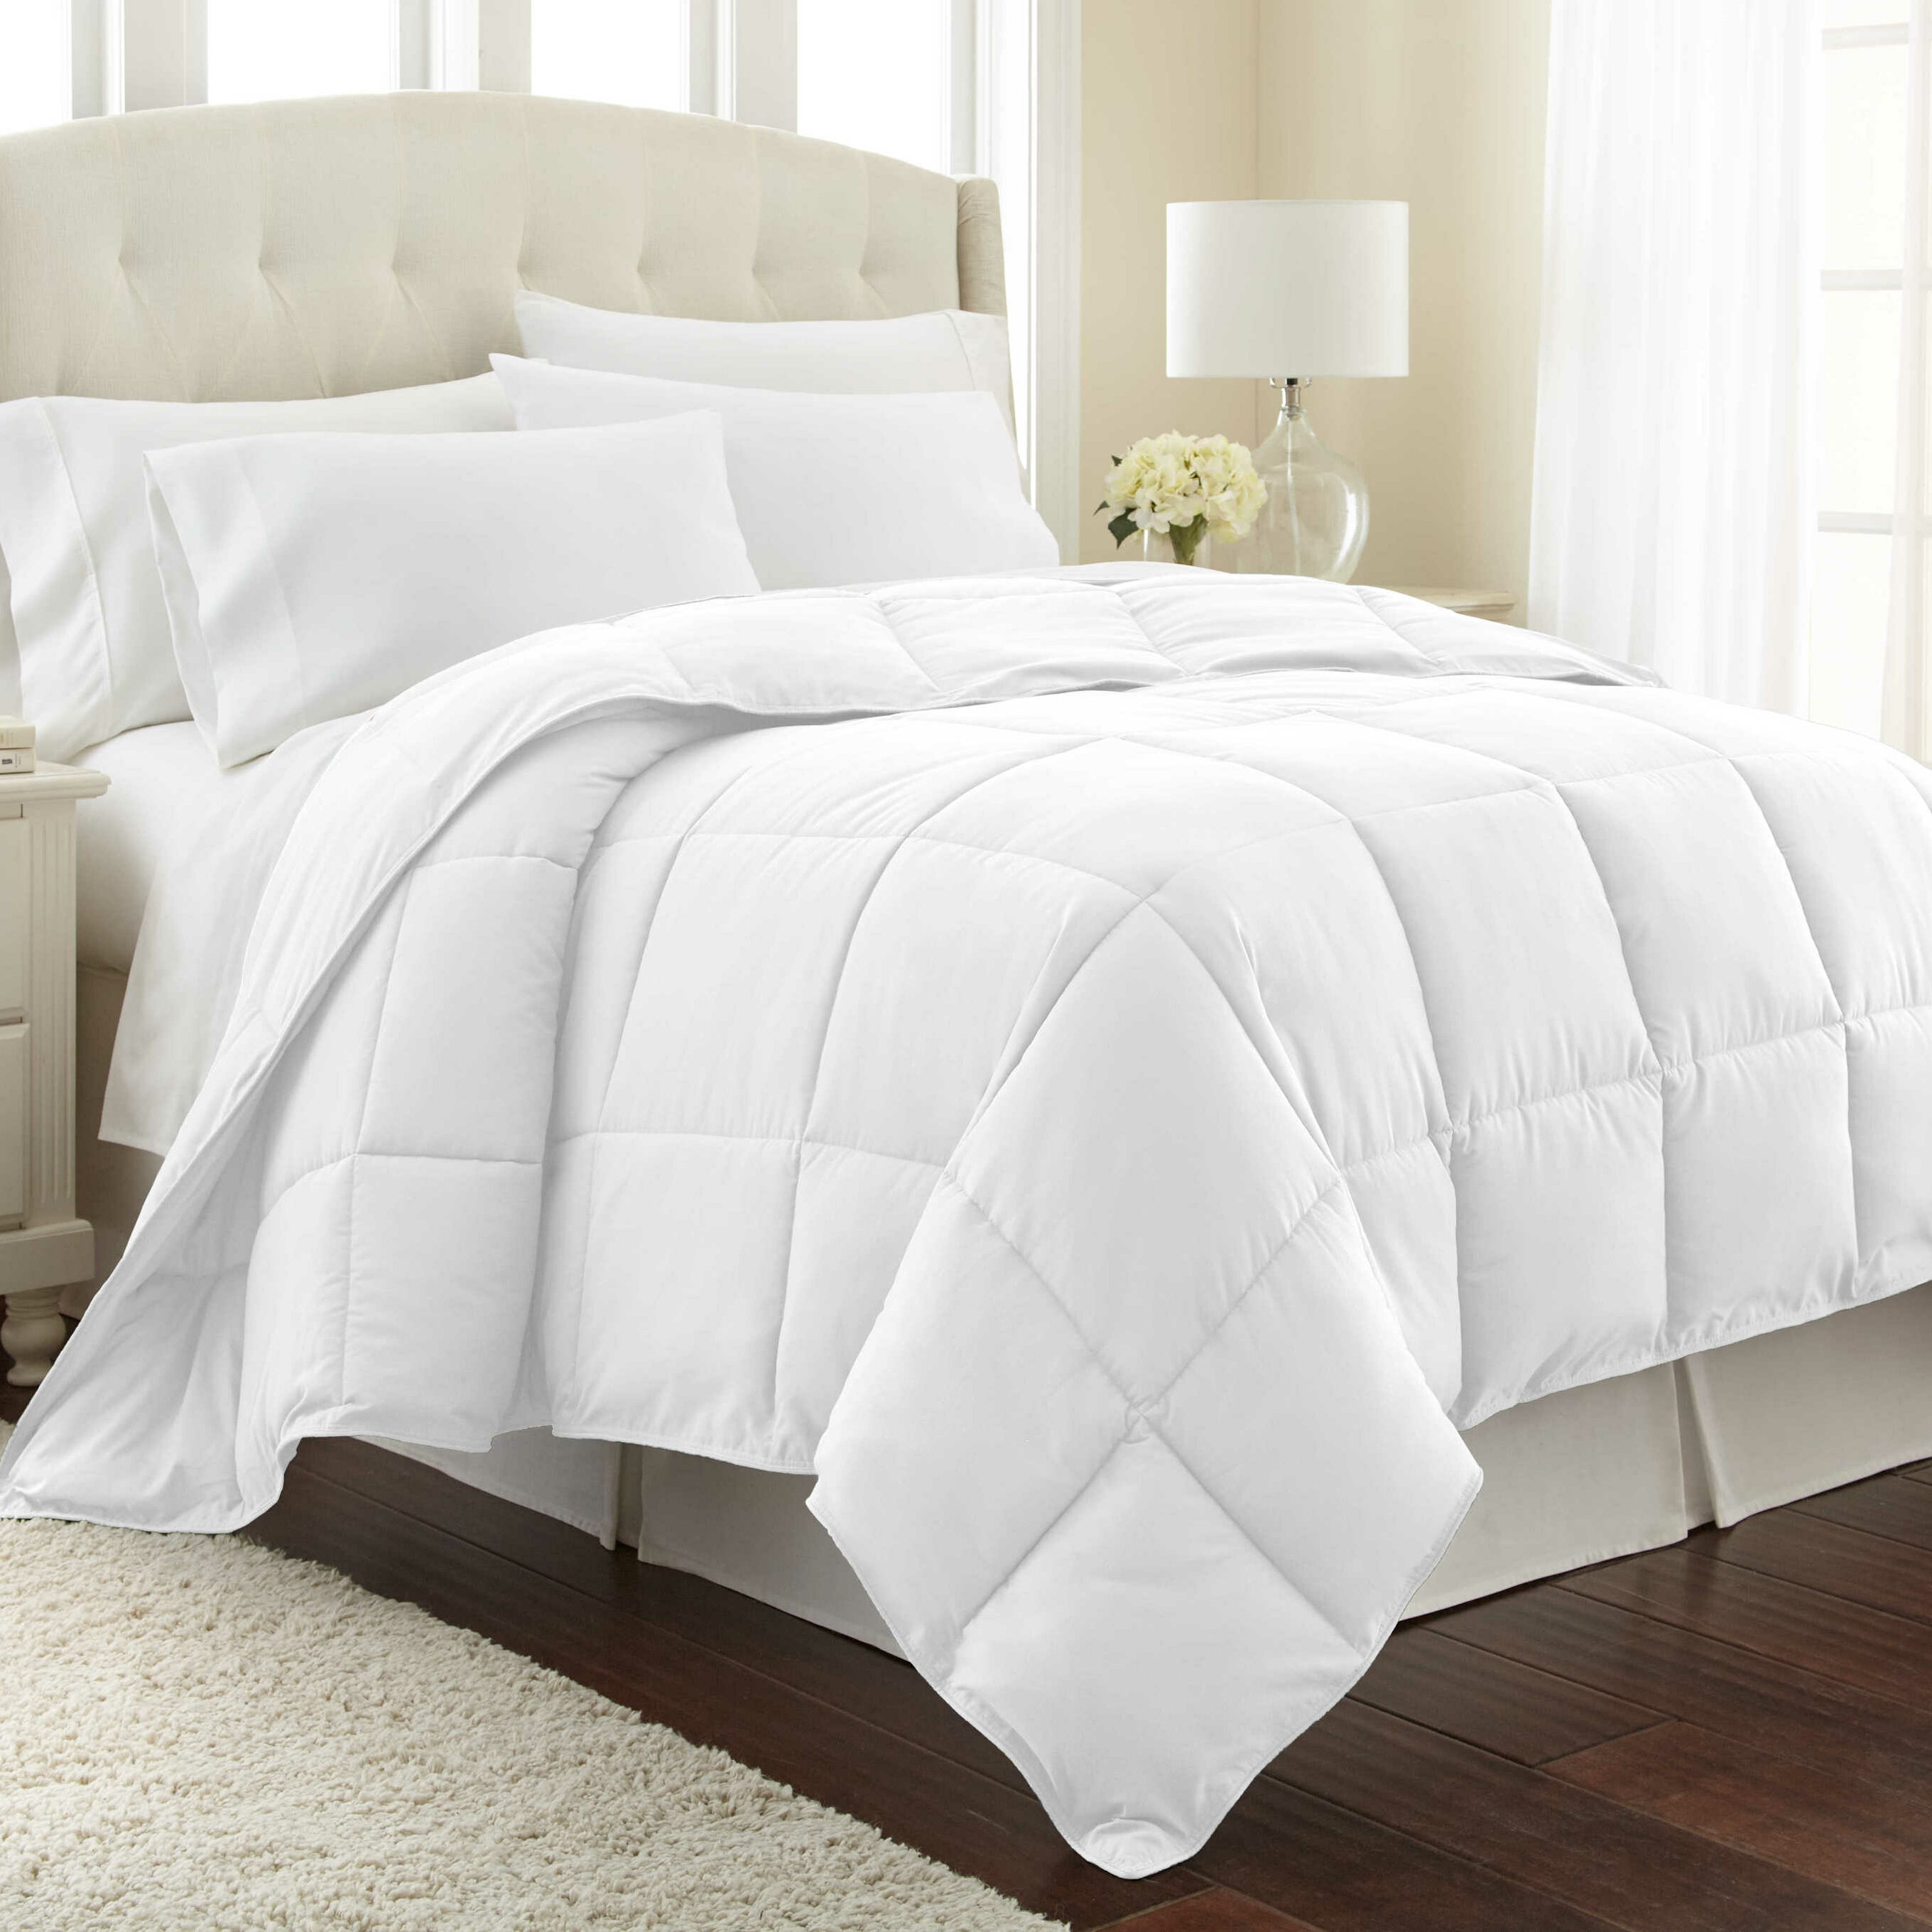 multiple com ip bfcf hotel levels down reviews warmth style comforter walmart alternative